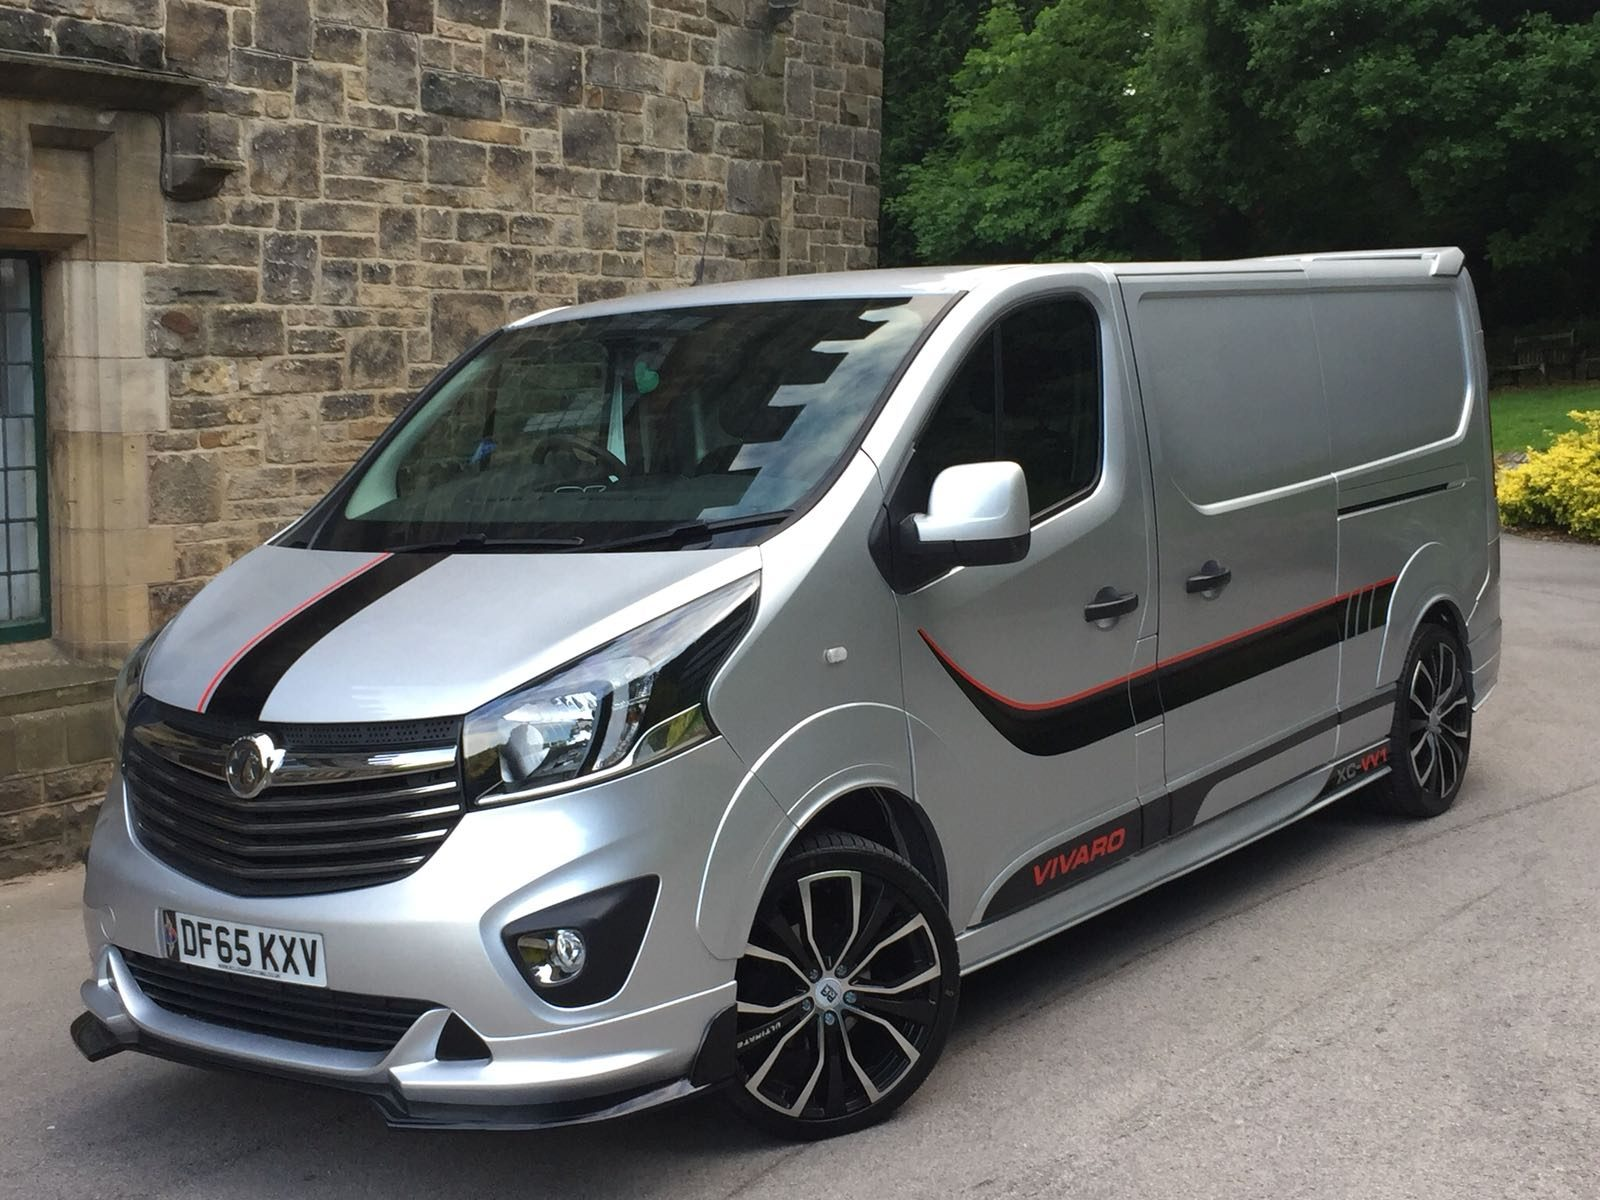 Vauxhall Vivaro Arches 10 Piece Xclusive Customz